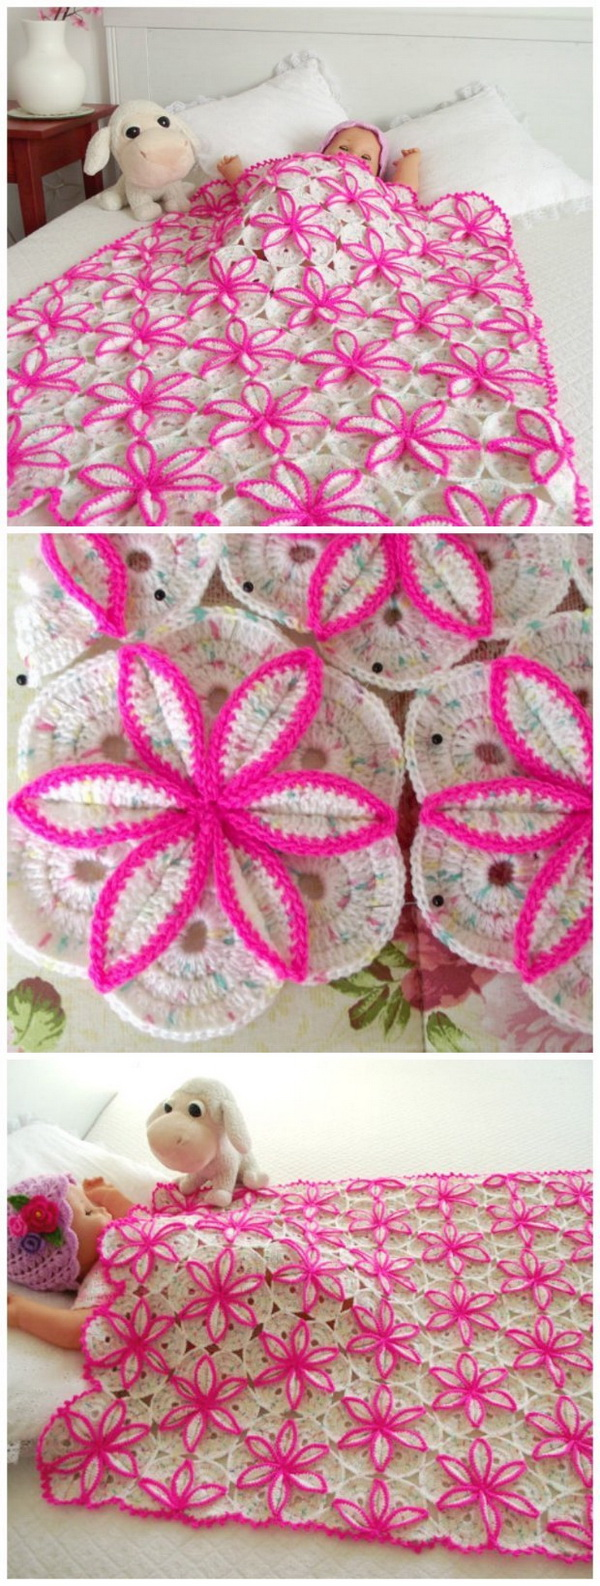 Easy Baby Crochet Patterns Cool Design Inspiration